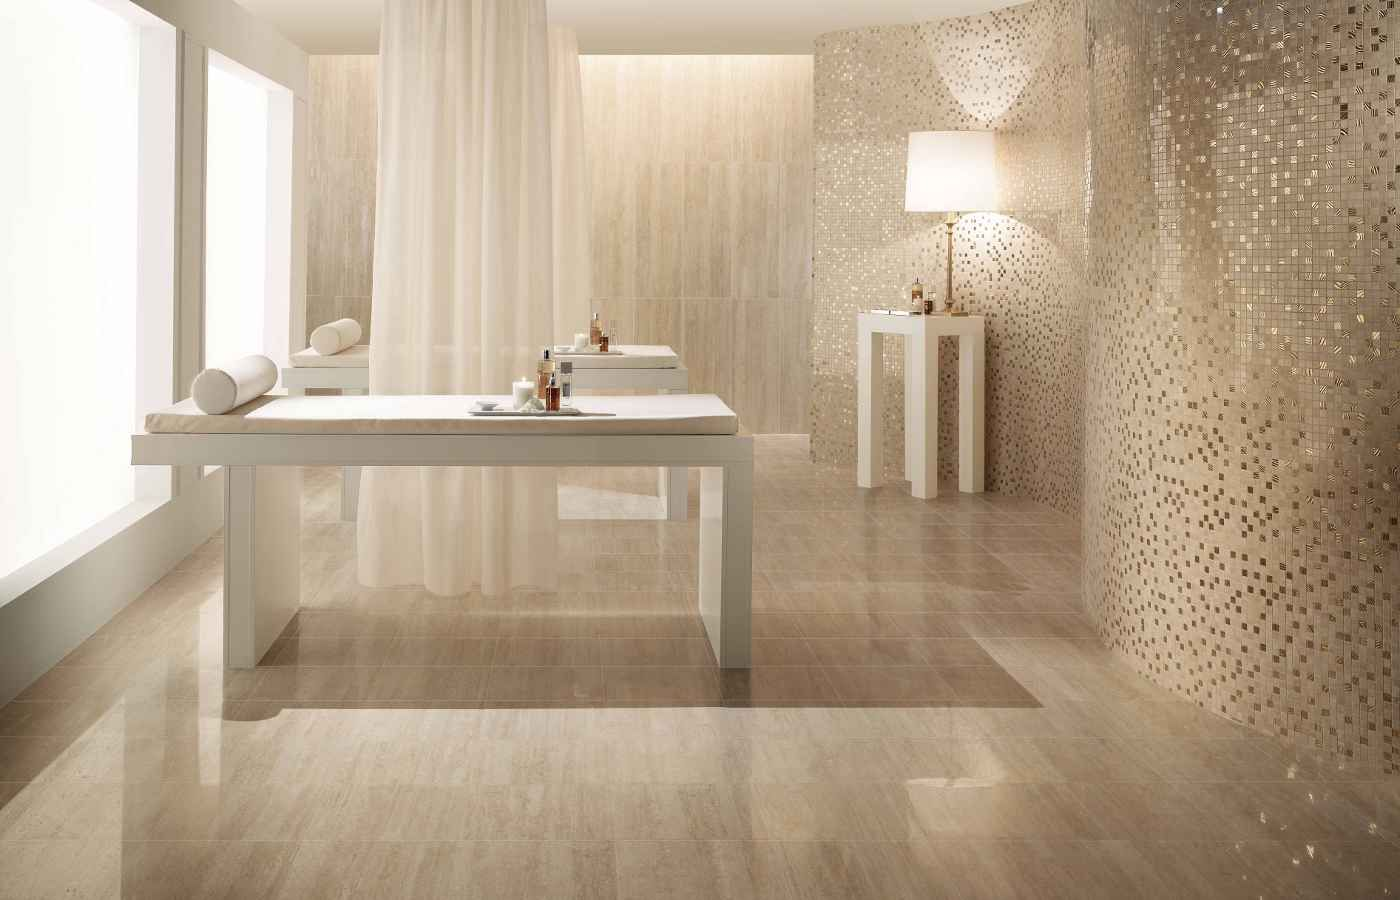 Image result for The Great Benefits of Porcelain Tile Flooring